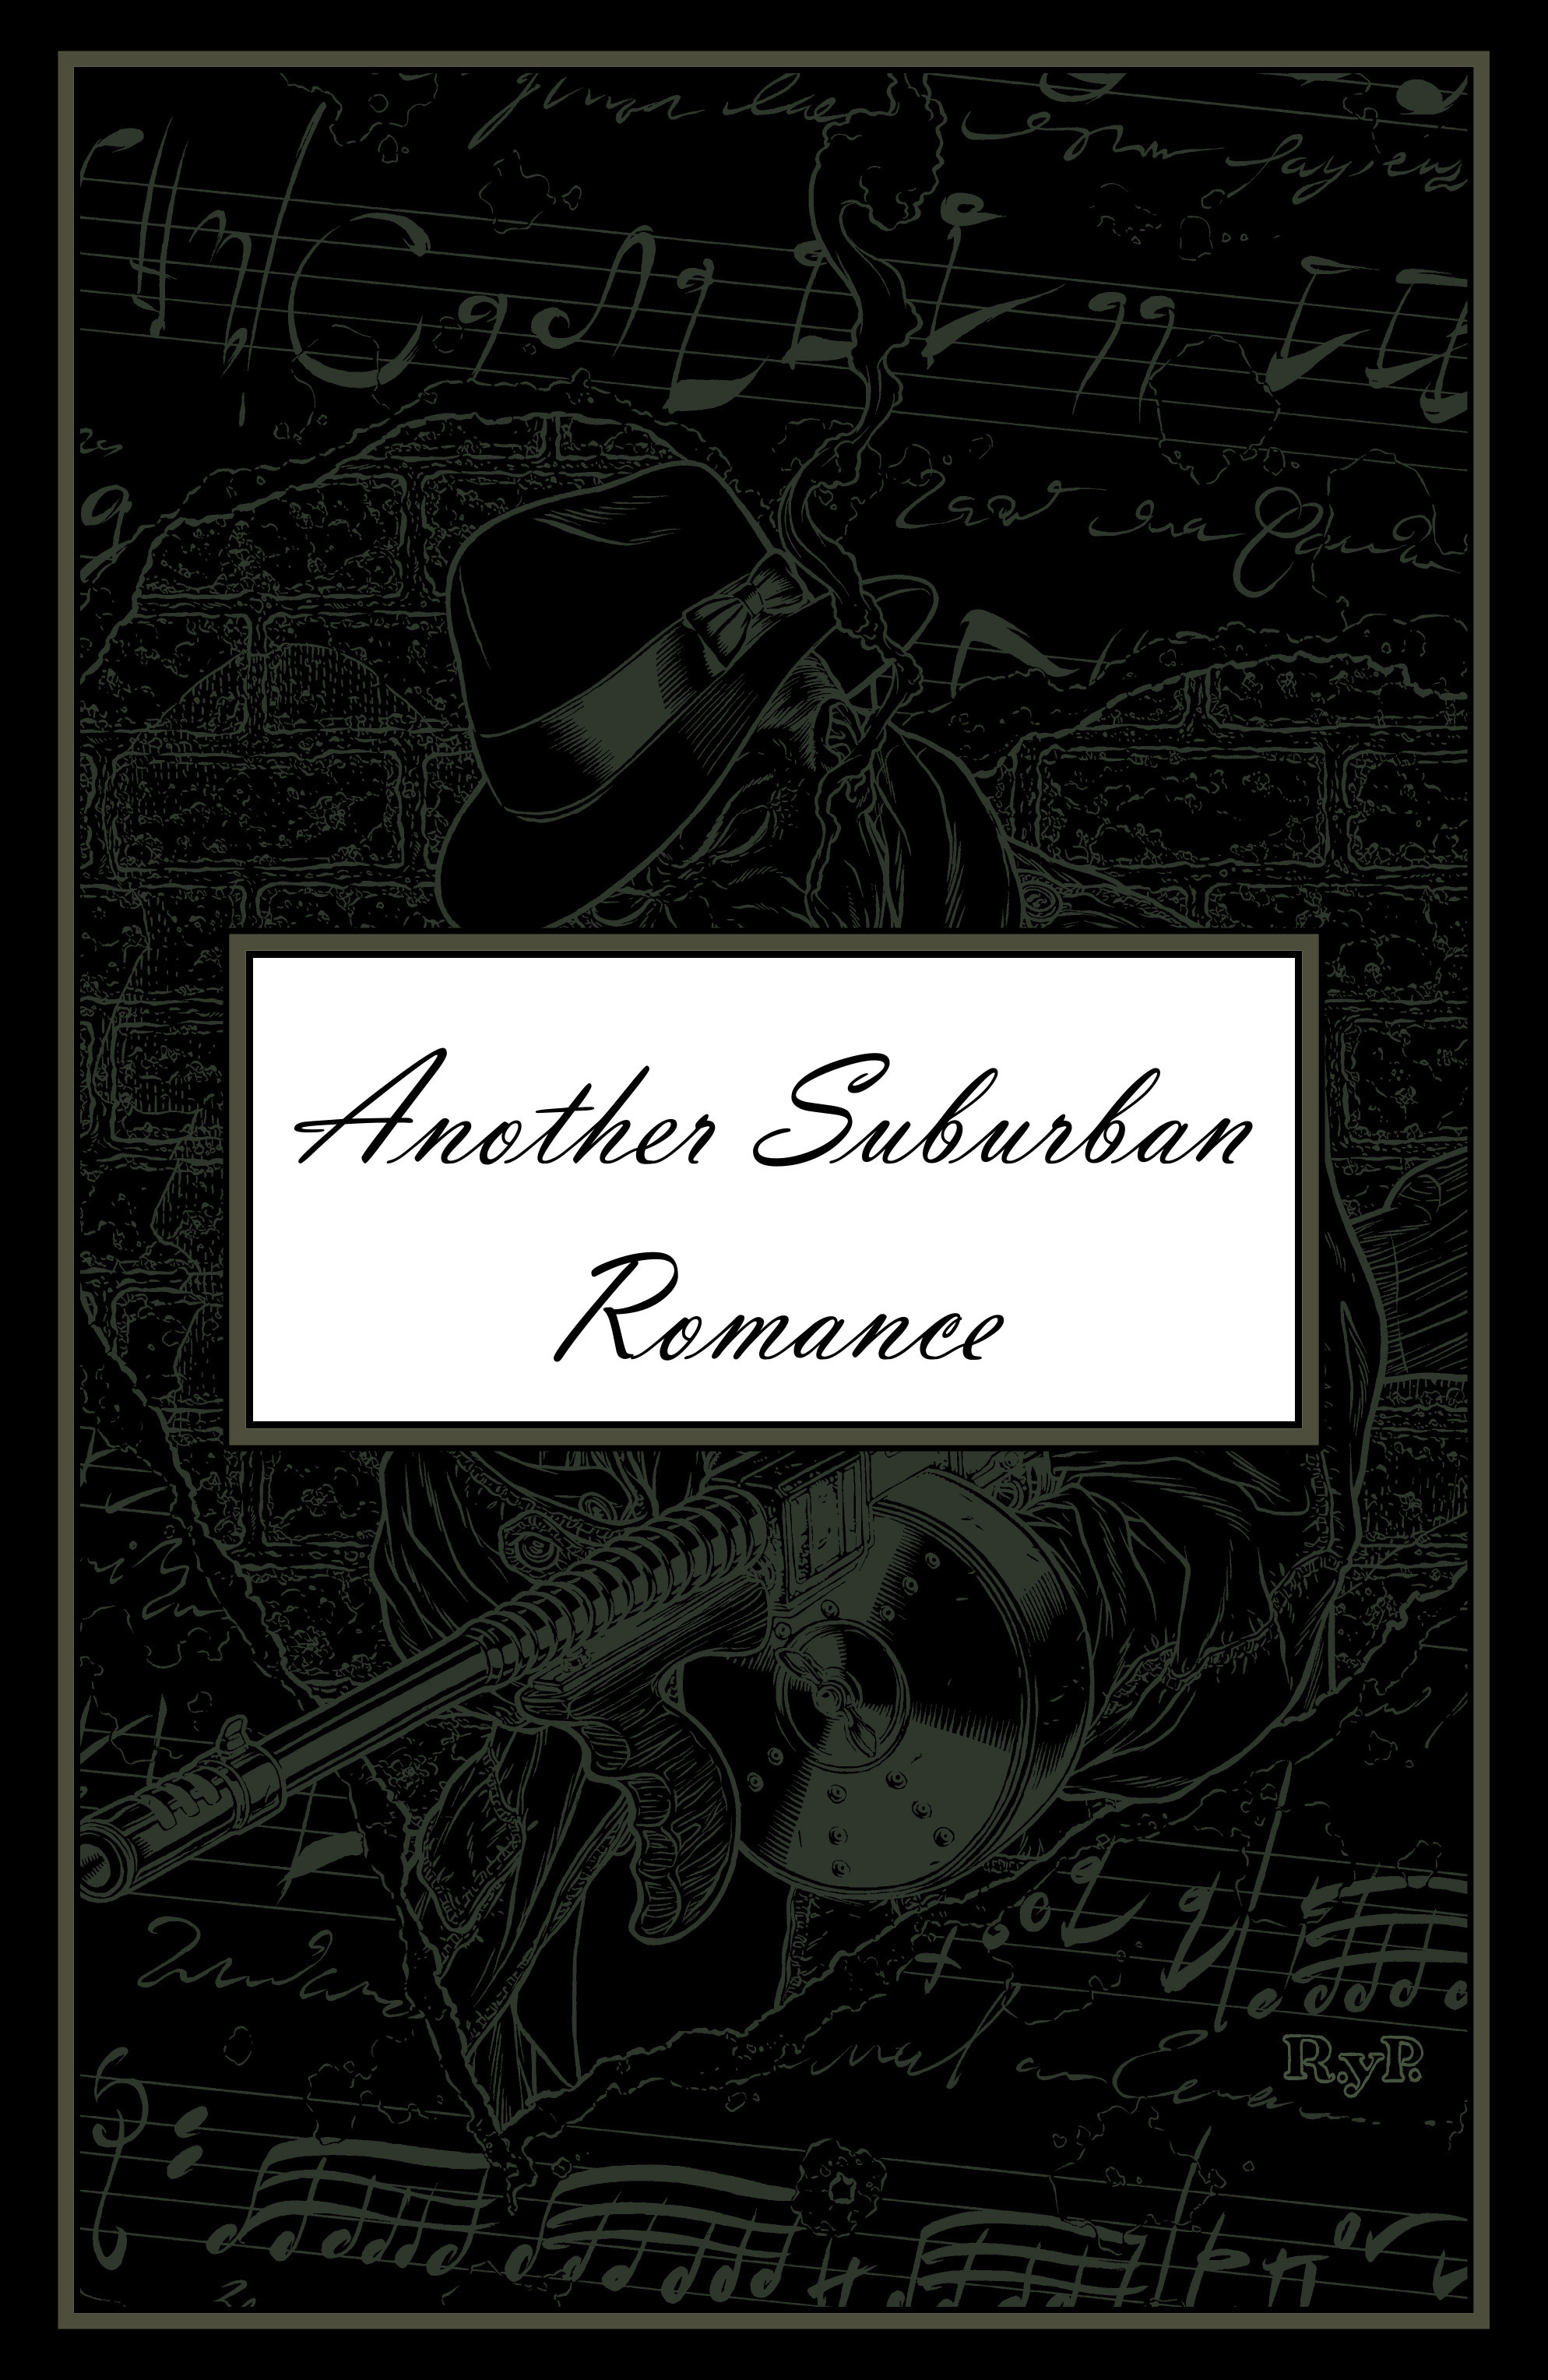 Read online Alan Moore's Another Suburban Romance comic -  Issue #Alan Moore's Another Suburban Romance Full - 50